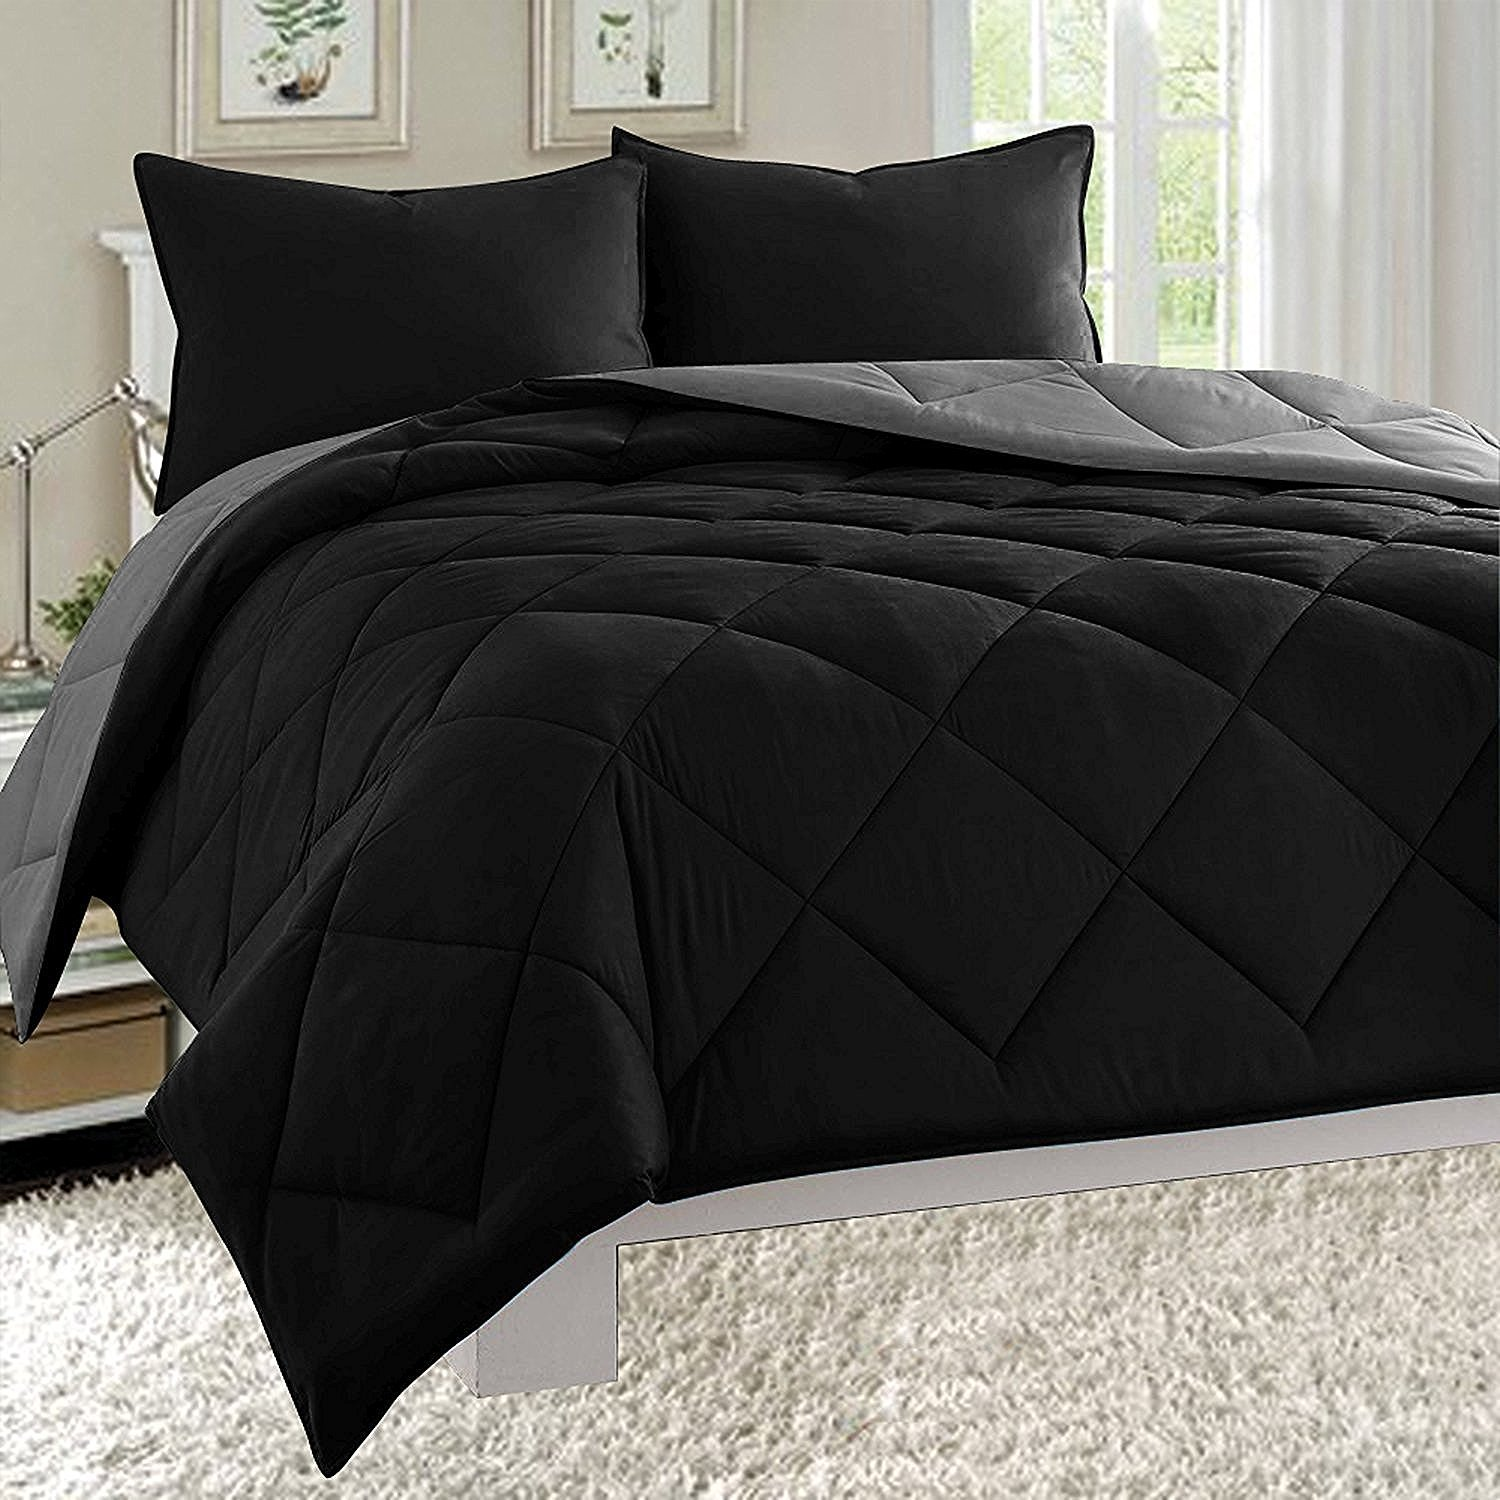 Elegant Comfort All Season Light Weight Down Alternative Reversible 3-Piece Comforter Set, Full/Queen, Black/Grey